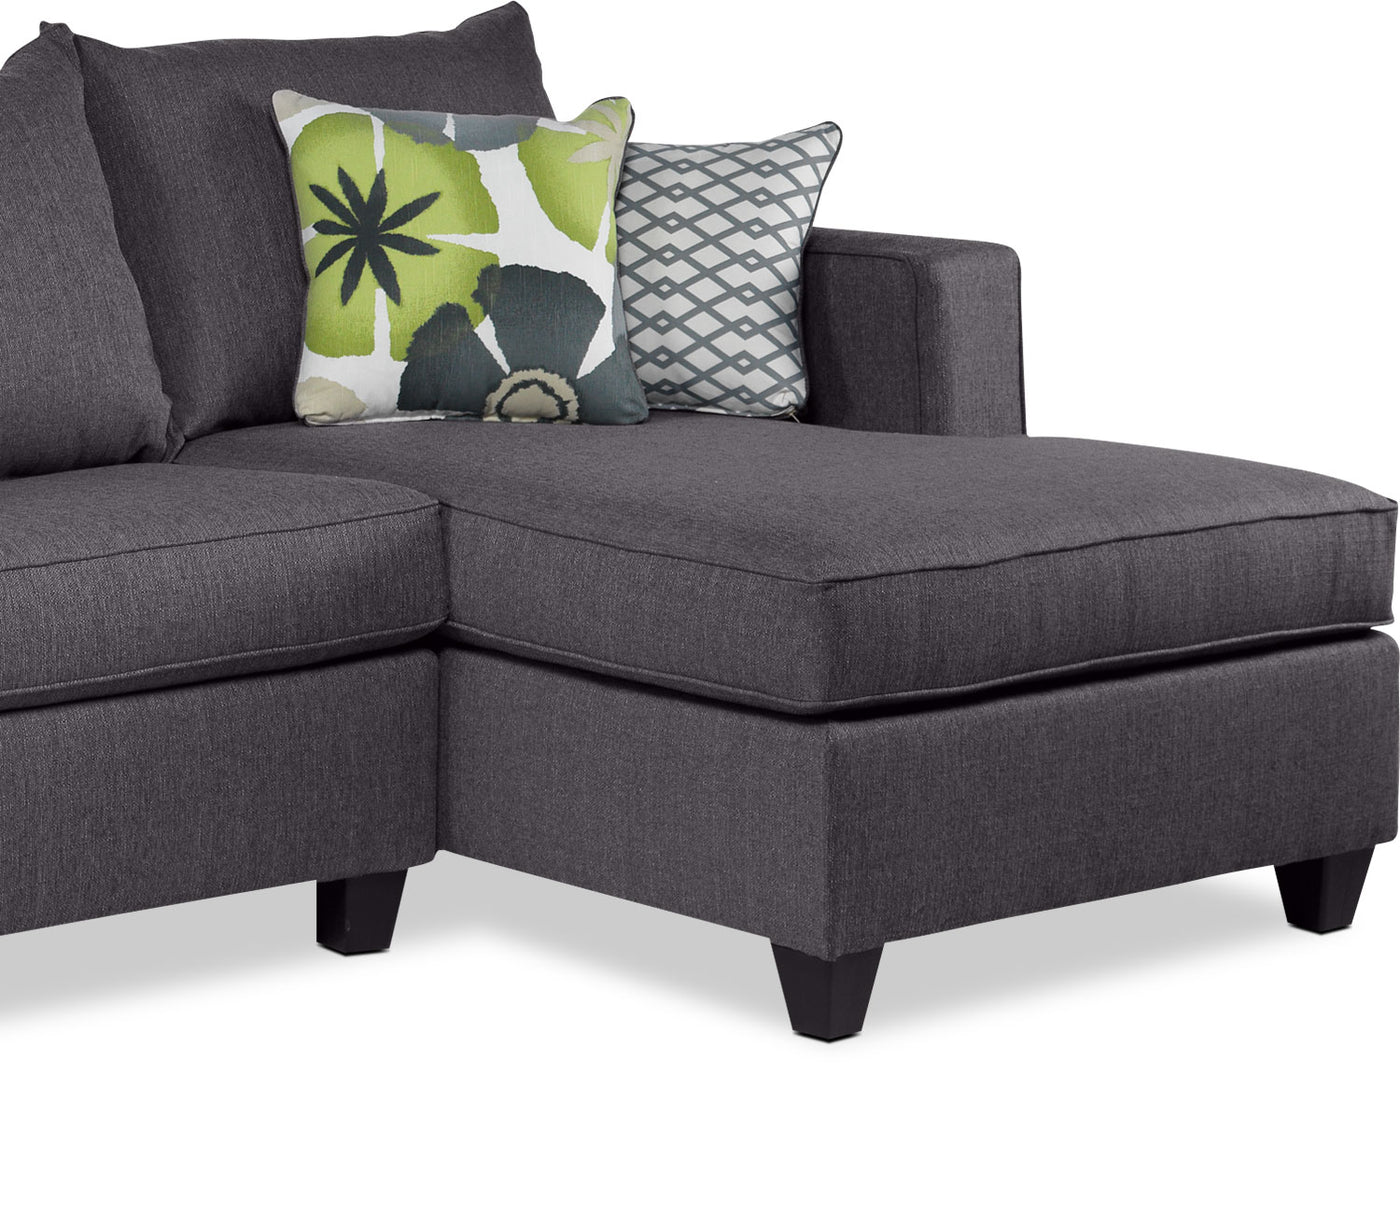 Halley 2-Piece Full Sofa Bed Sectional With Right-Facing